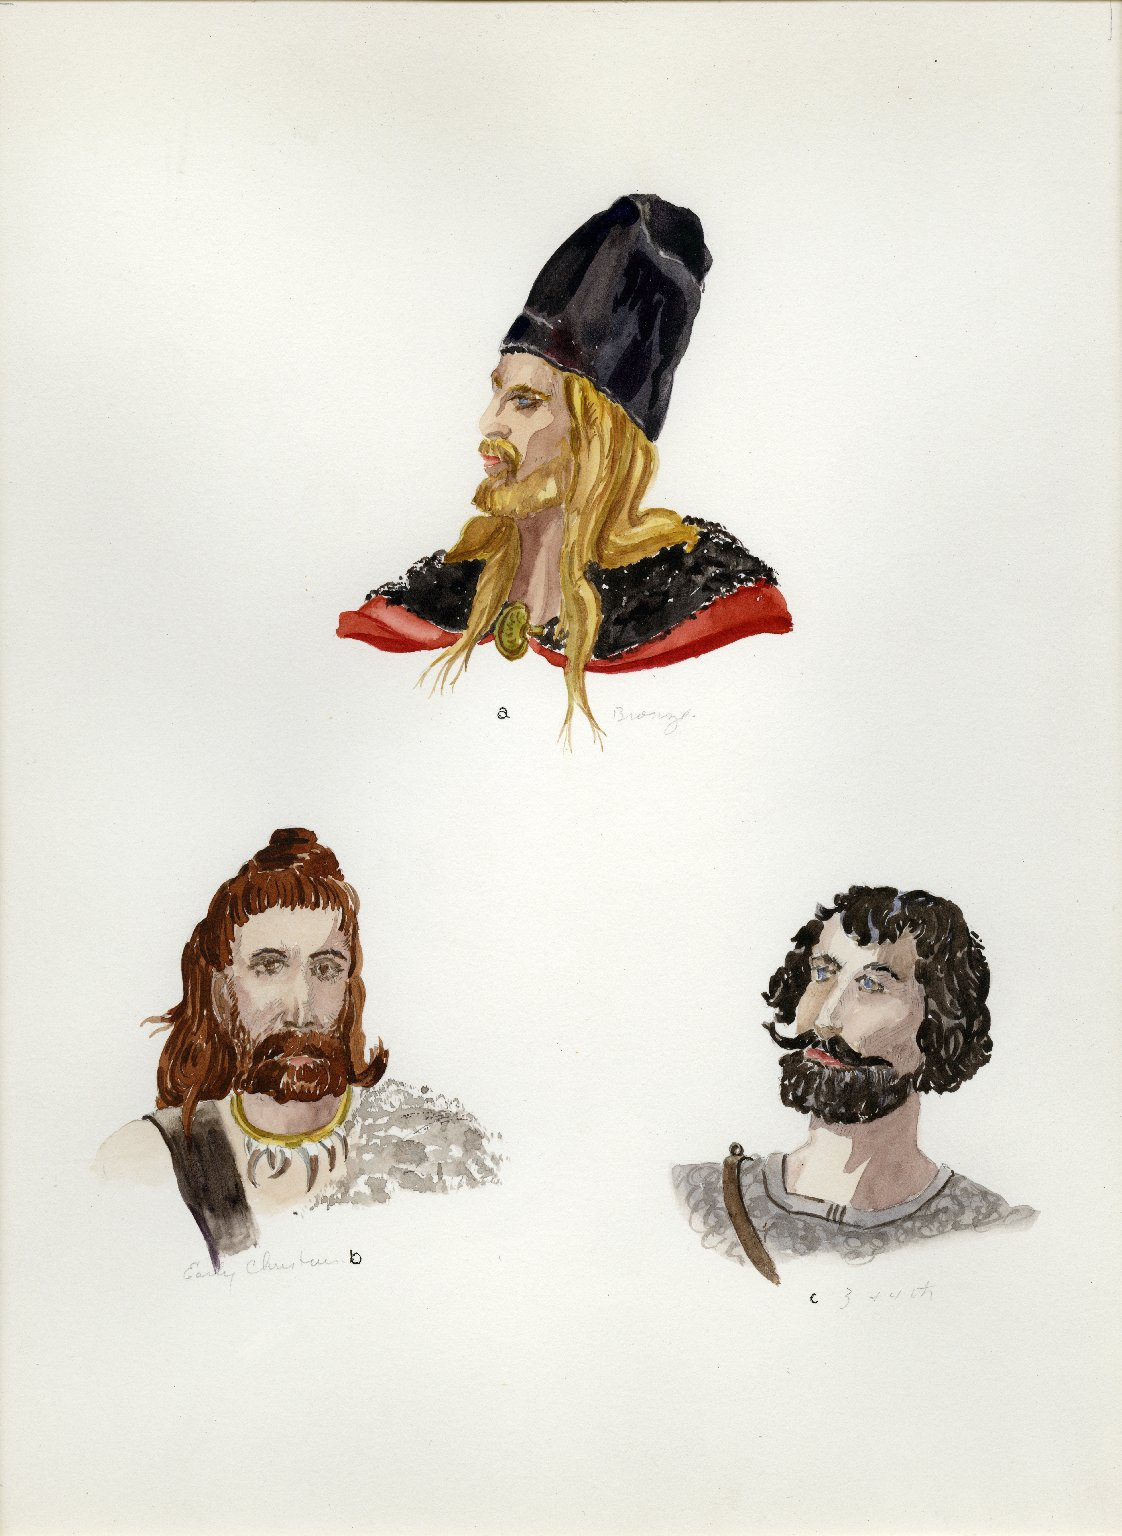 Plate XII: Early Western Europe cap, coiffure